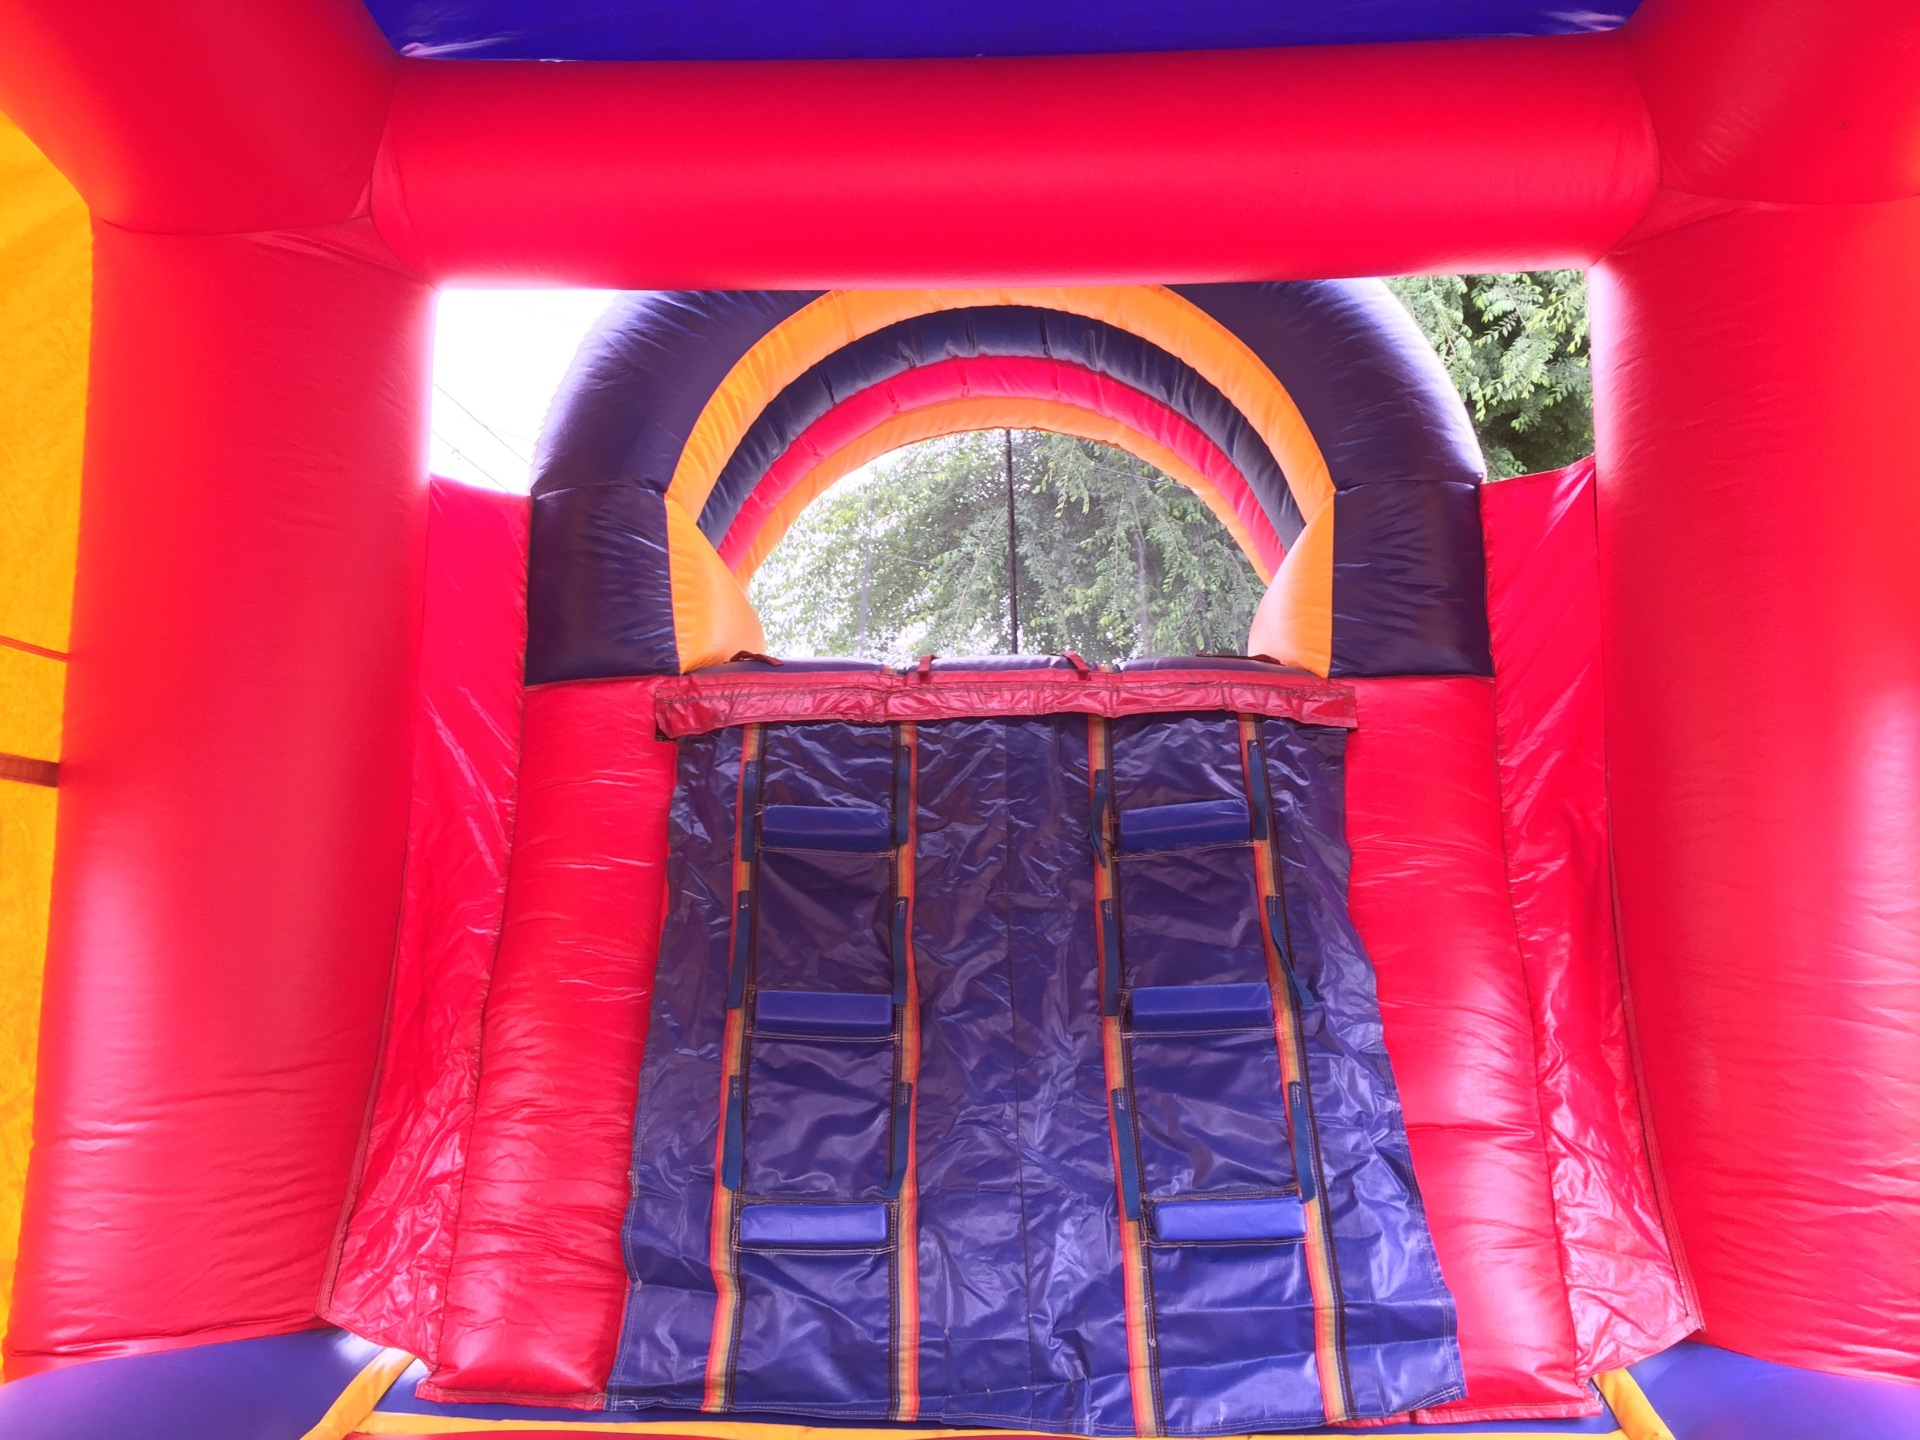 COMBO JUMPER, BIG SLIDE JUMPER, 3 IN 1 COMBO JUMPER, WATERSLIDE, BIG WATERSLIDE JUMPER